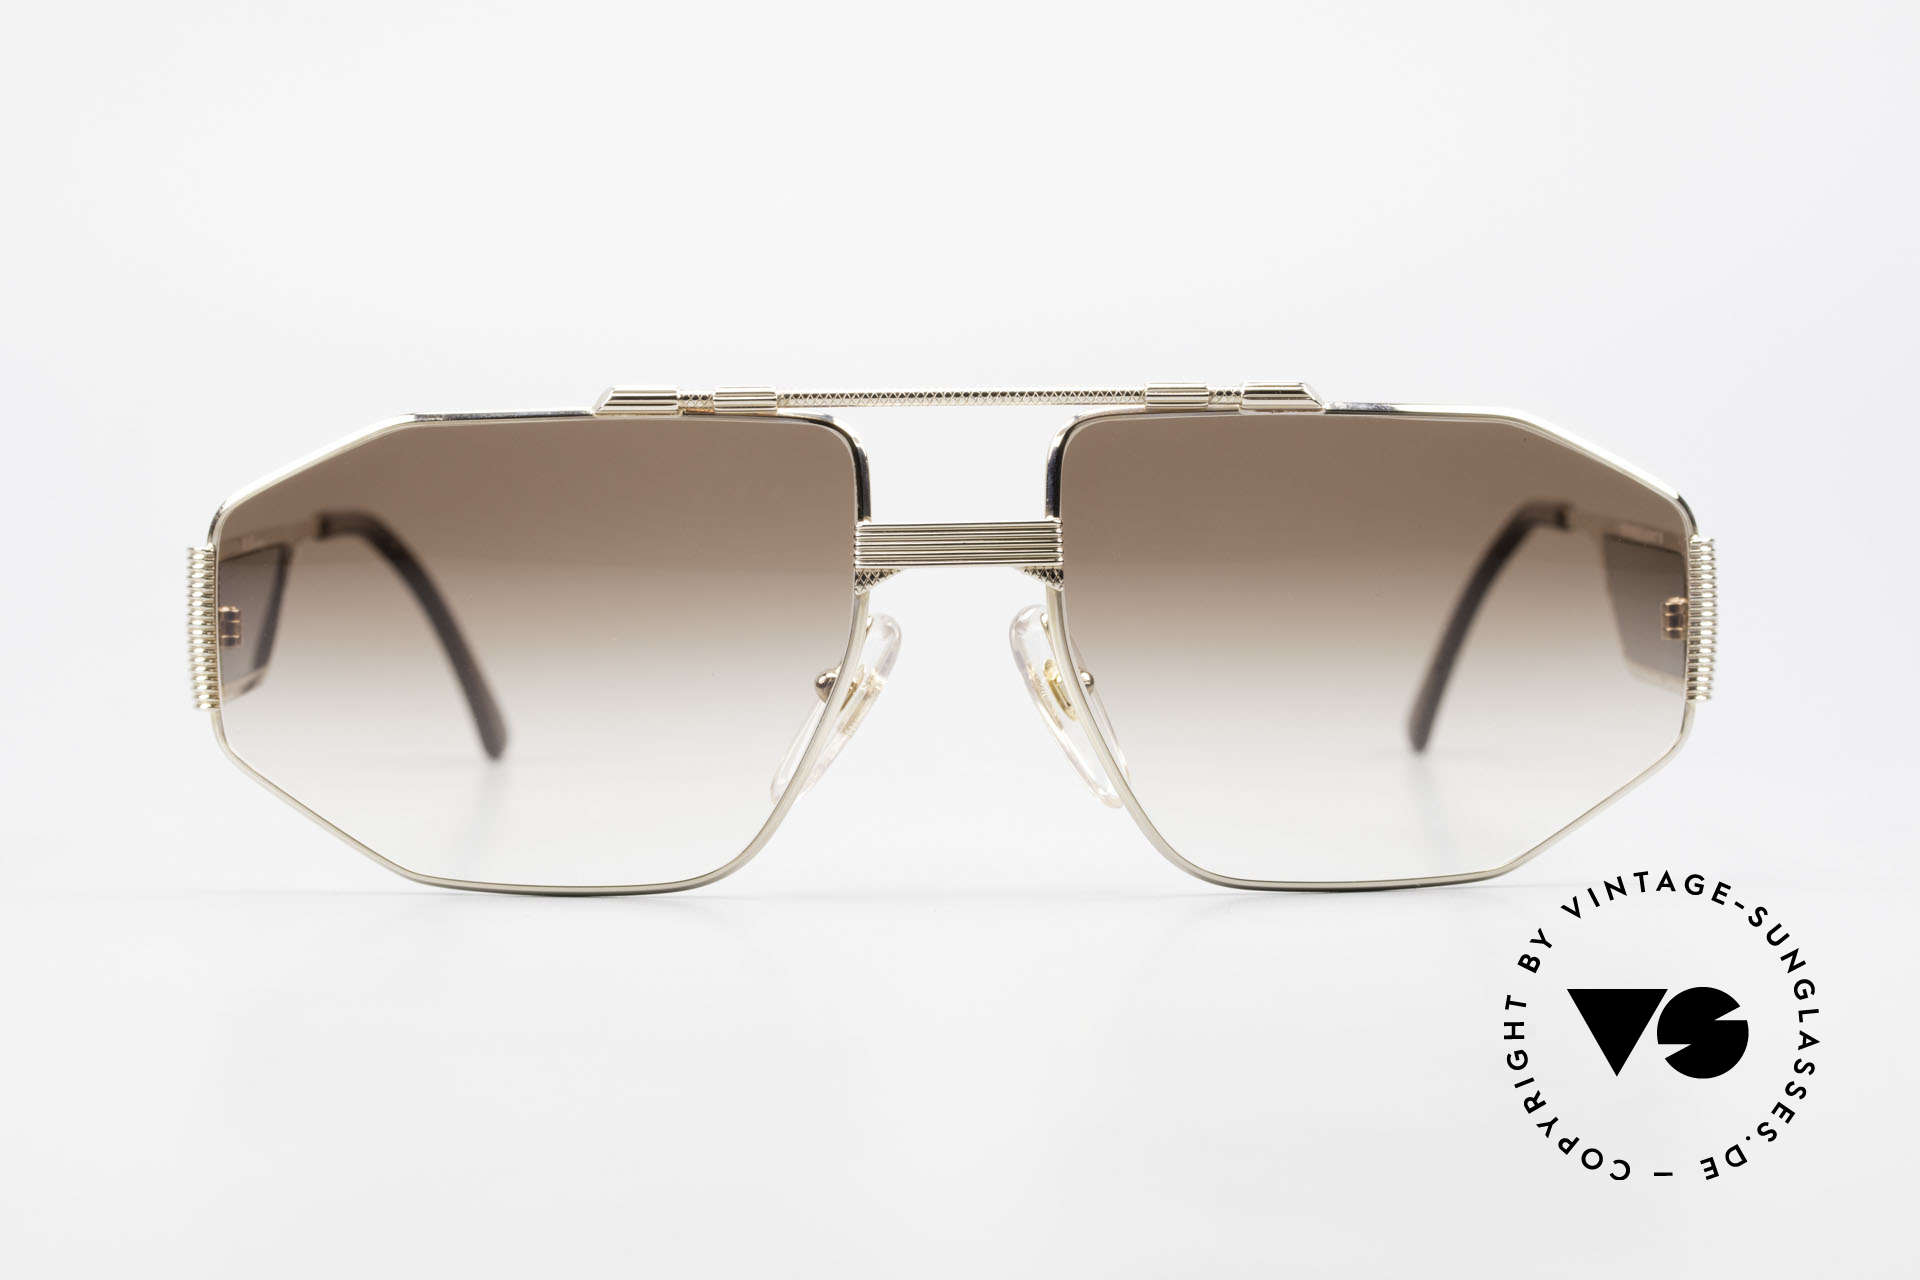 Christian Dior 2427 80's Dior Monsieur Sunglasses, extraordinary temple design; just striking and unique!, Made for Men